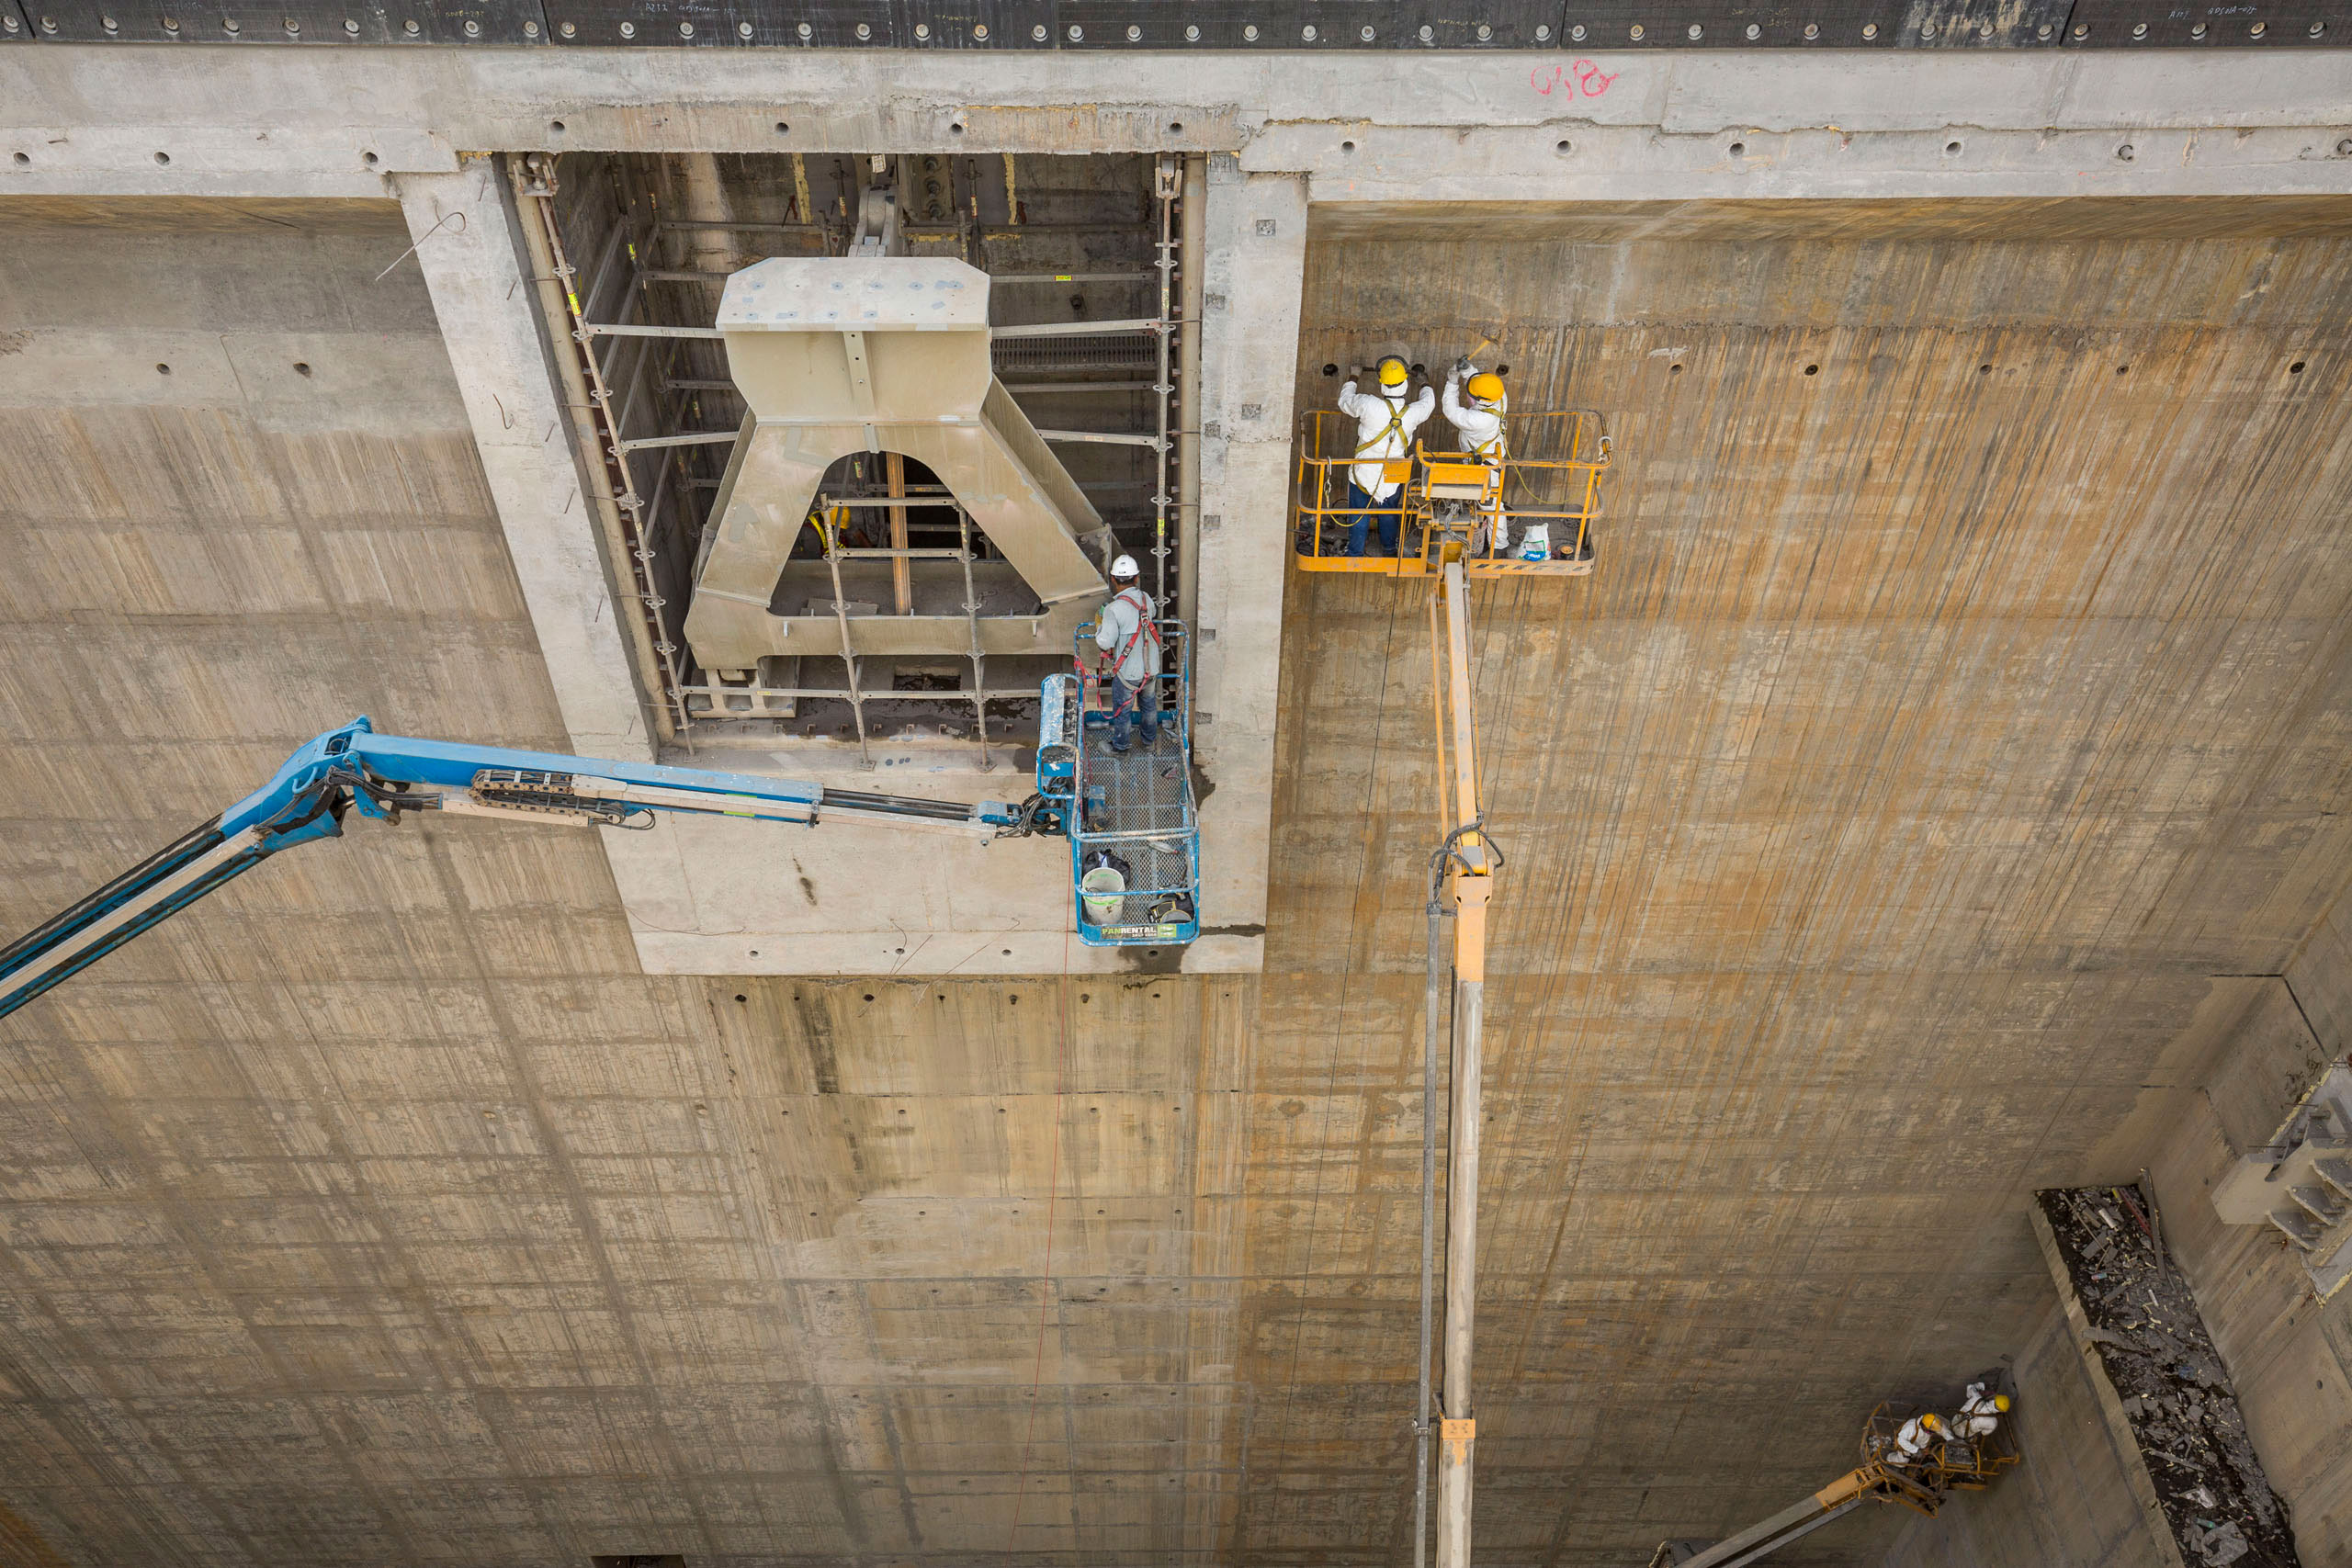 Workers make final refinements to the concrete and steel slot that will hold the last gate on the Pacific side of the Panama Canal Expansion project, April 23, 2015.